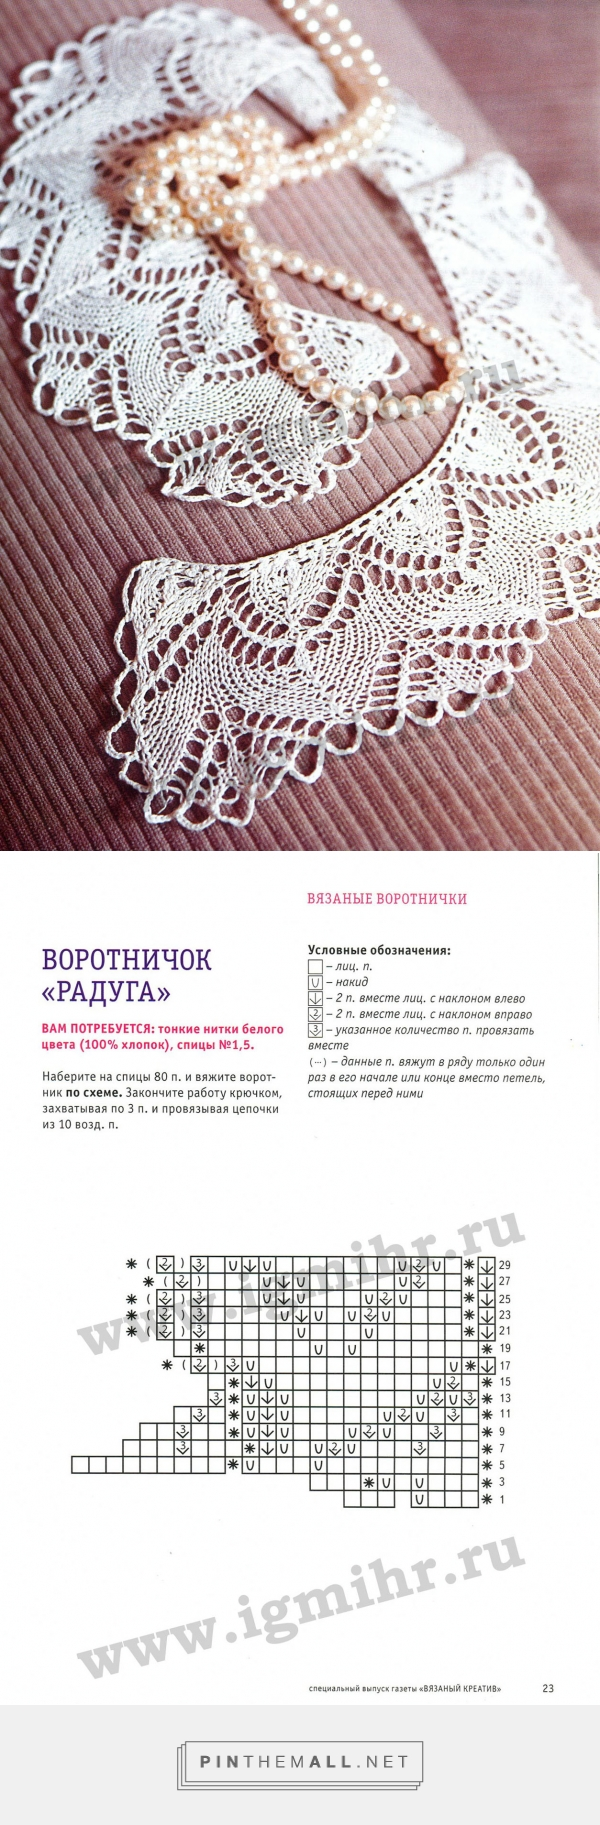 Knitted Lace Collar with chart. Wonderful album of knitted and ...